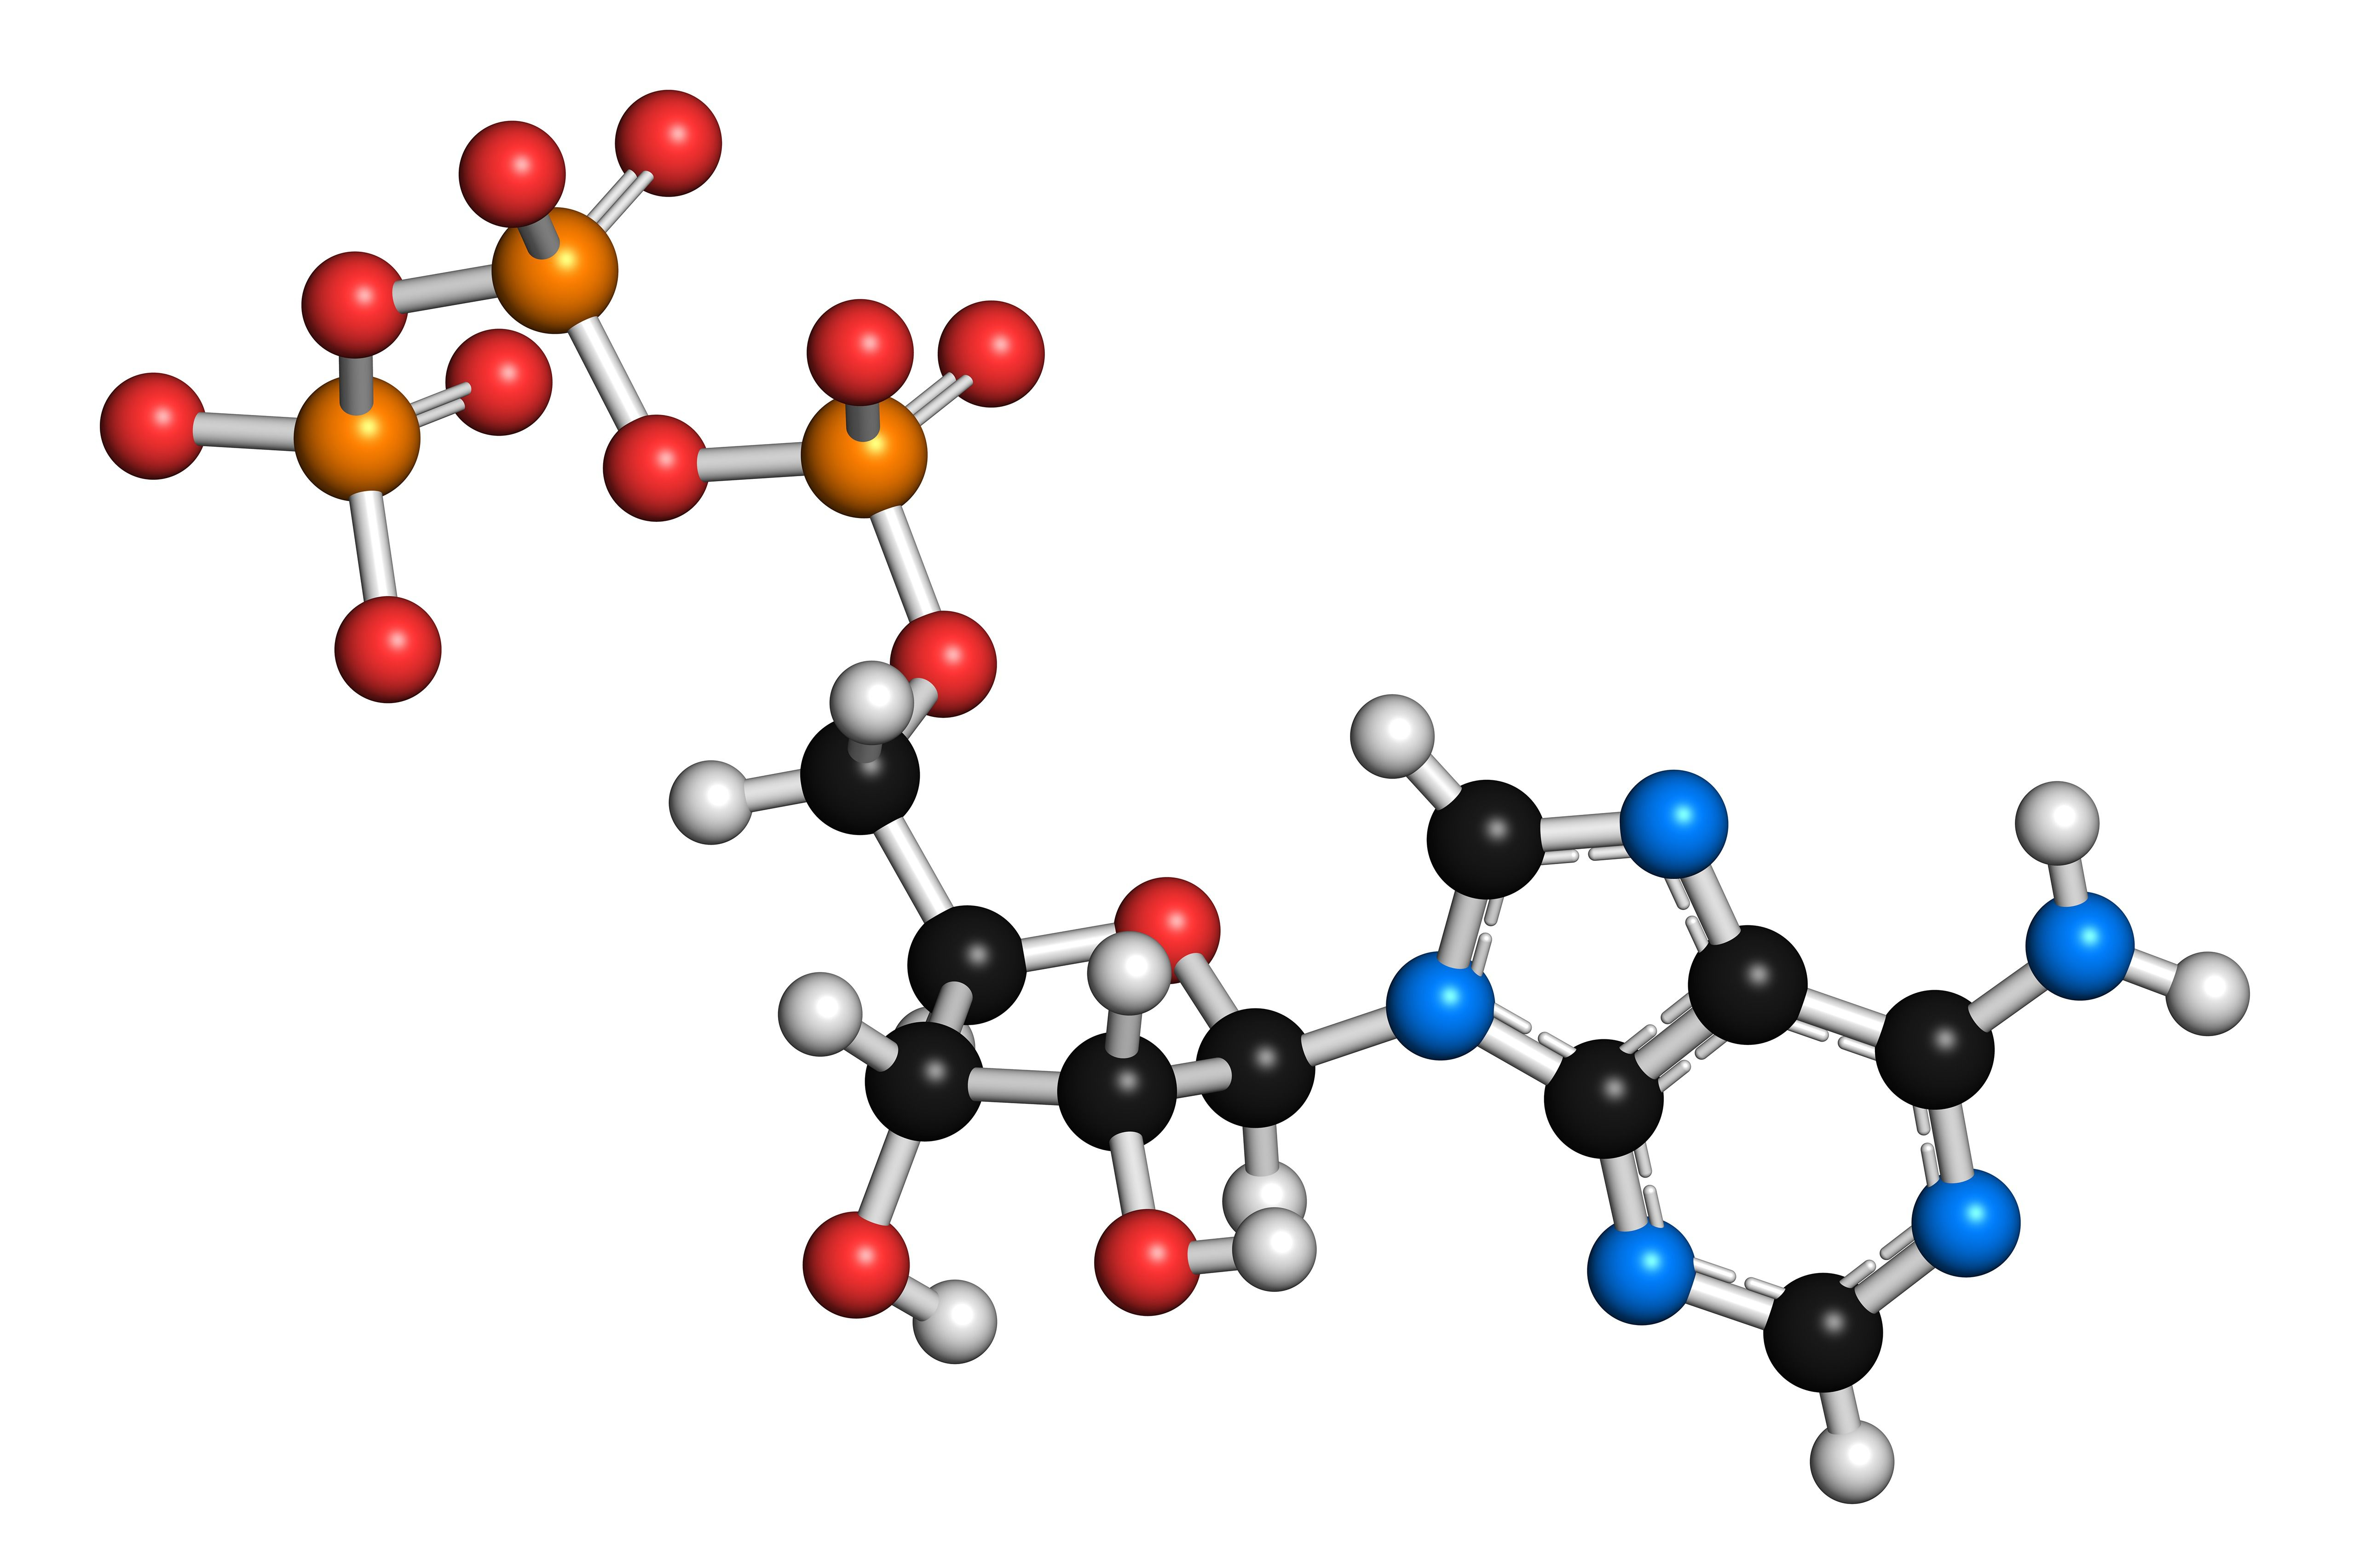 Breaking the bonds that join phosphate groups to ATP releases energy.